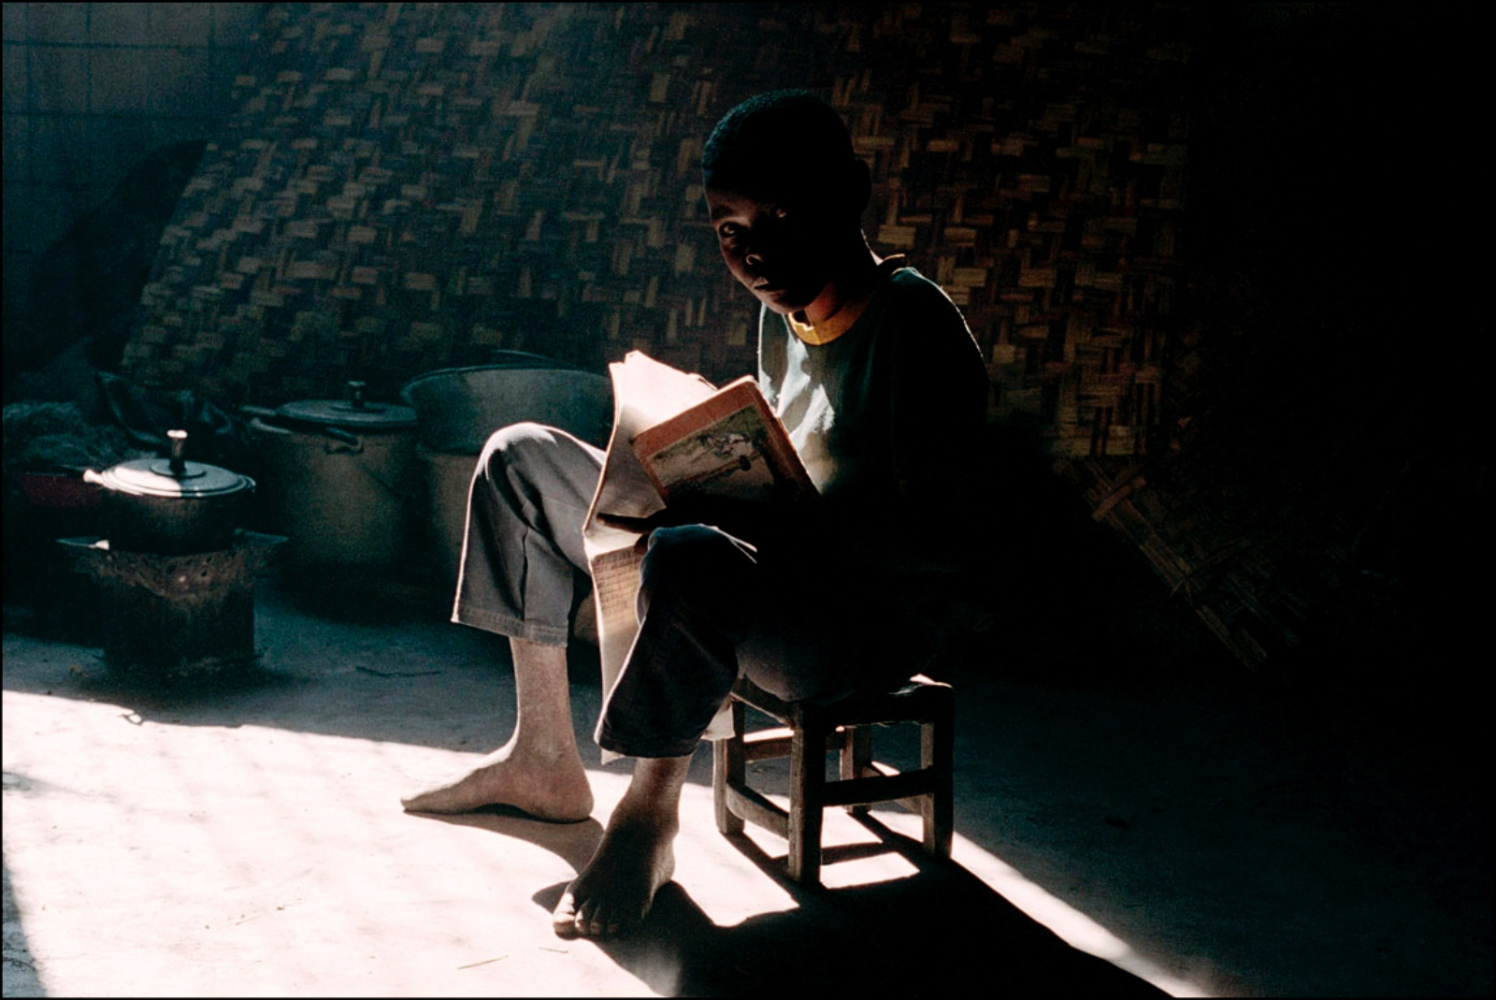 Boy Reading, Sun Rays, Caala, Angola, July 2000